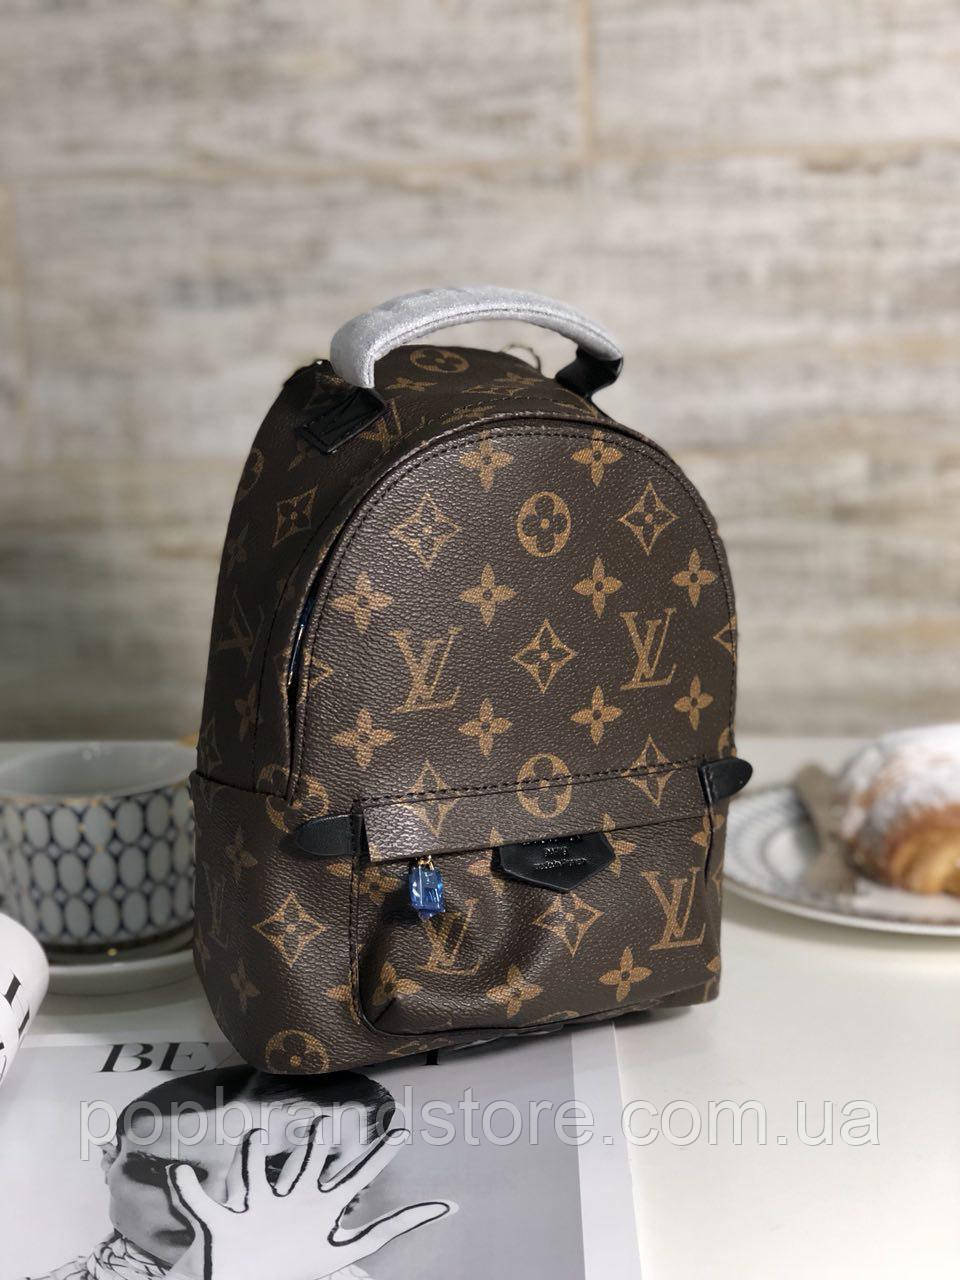 a5e5e6b1b689 Крутой женский рюкзак LOUIS VUITTON PALM SPRING mini LUX (реплика) - Pop  Brand Store